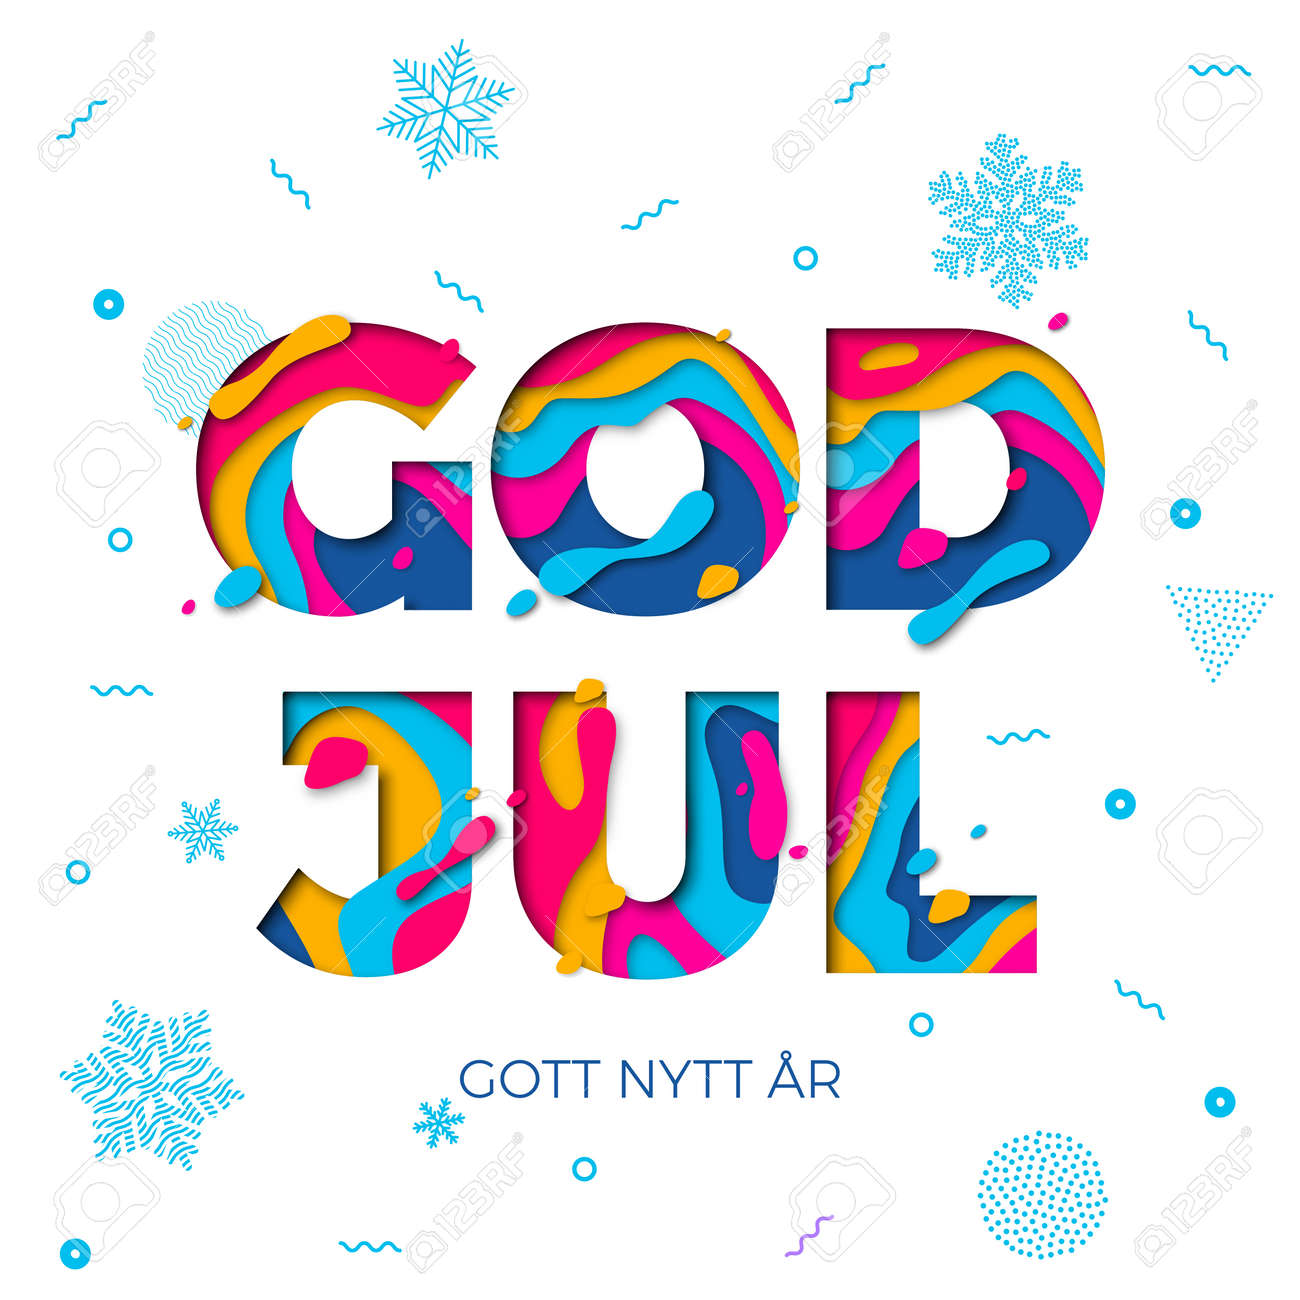 god jul merry christmas and gott nytt ar happy new year swedish greeting card white background